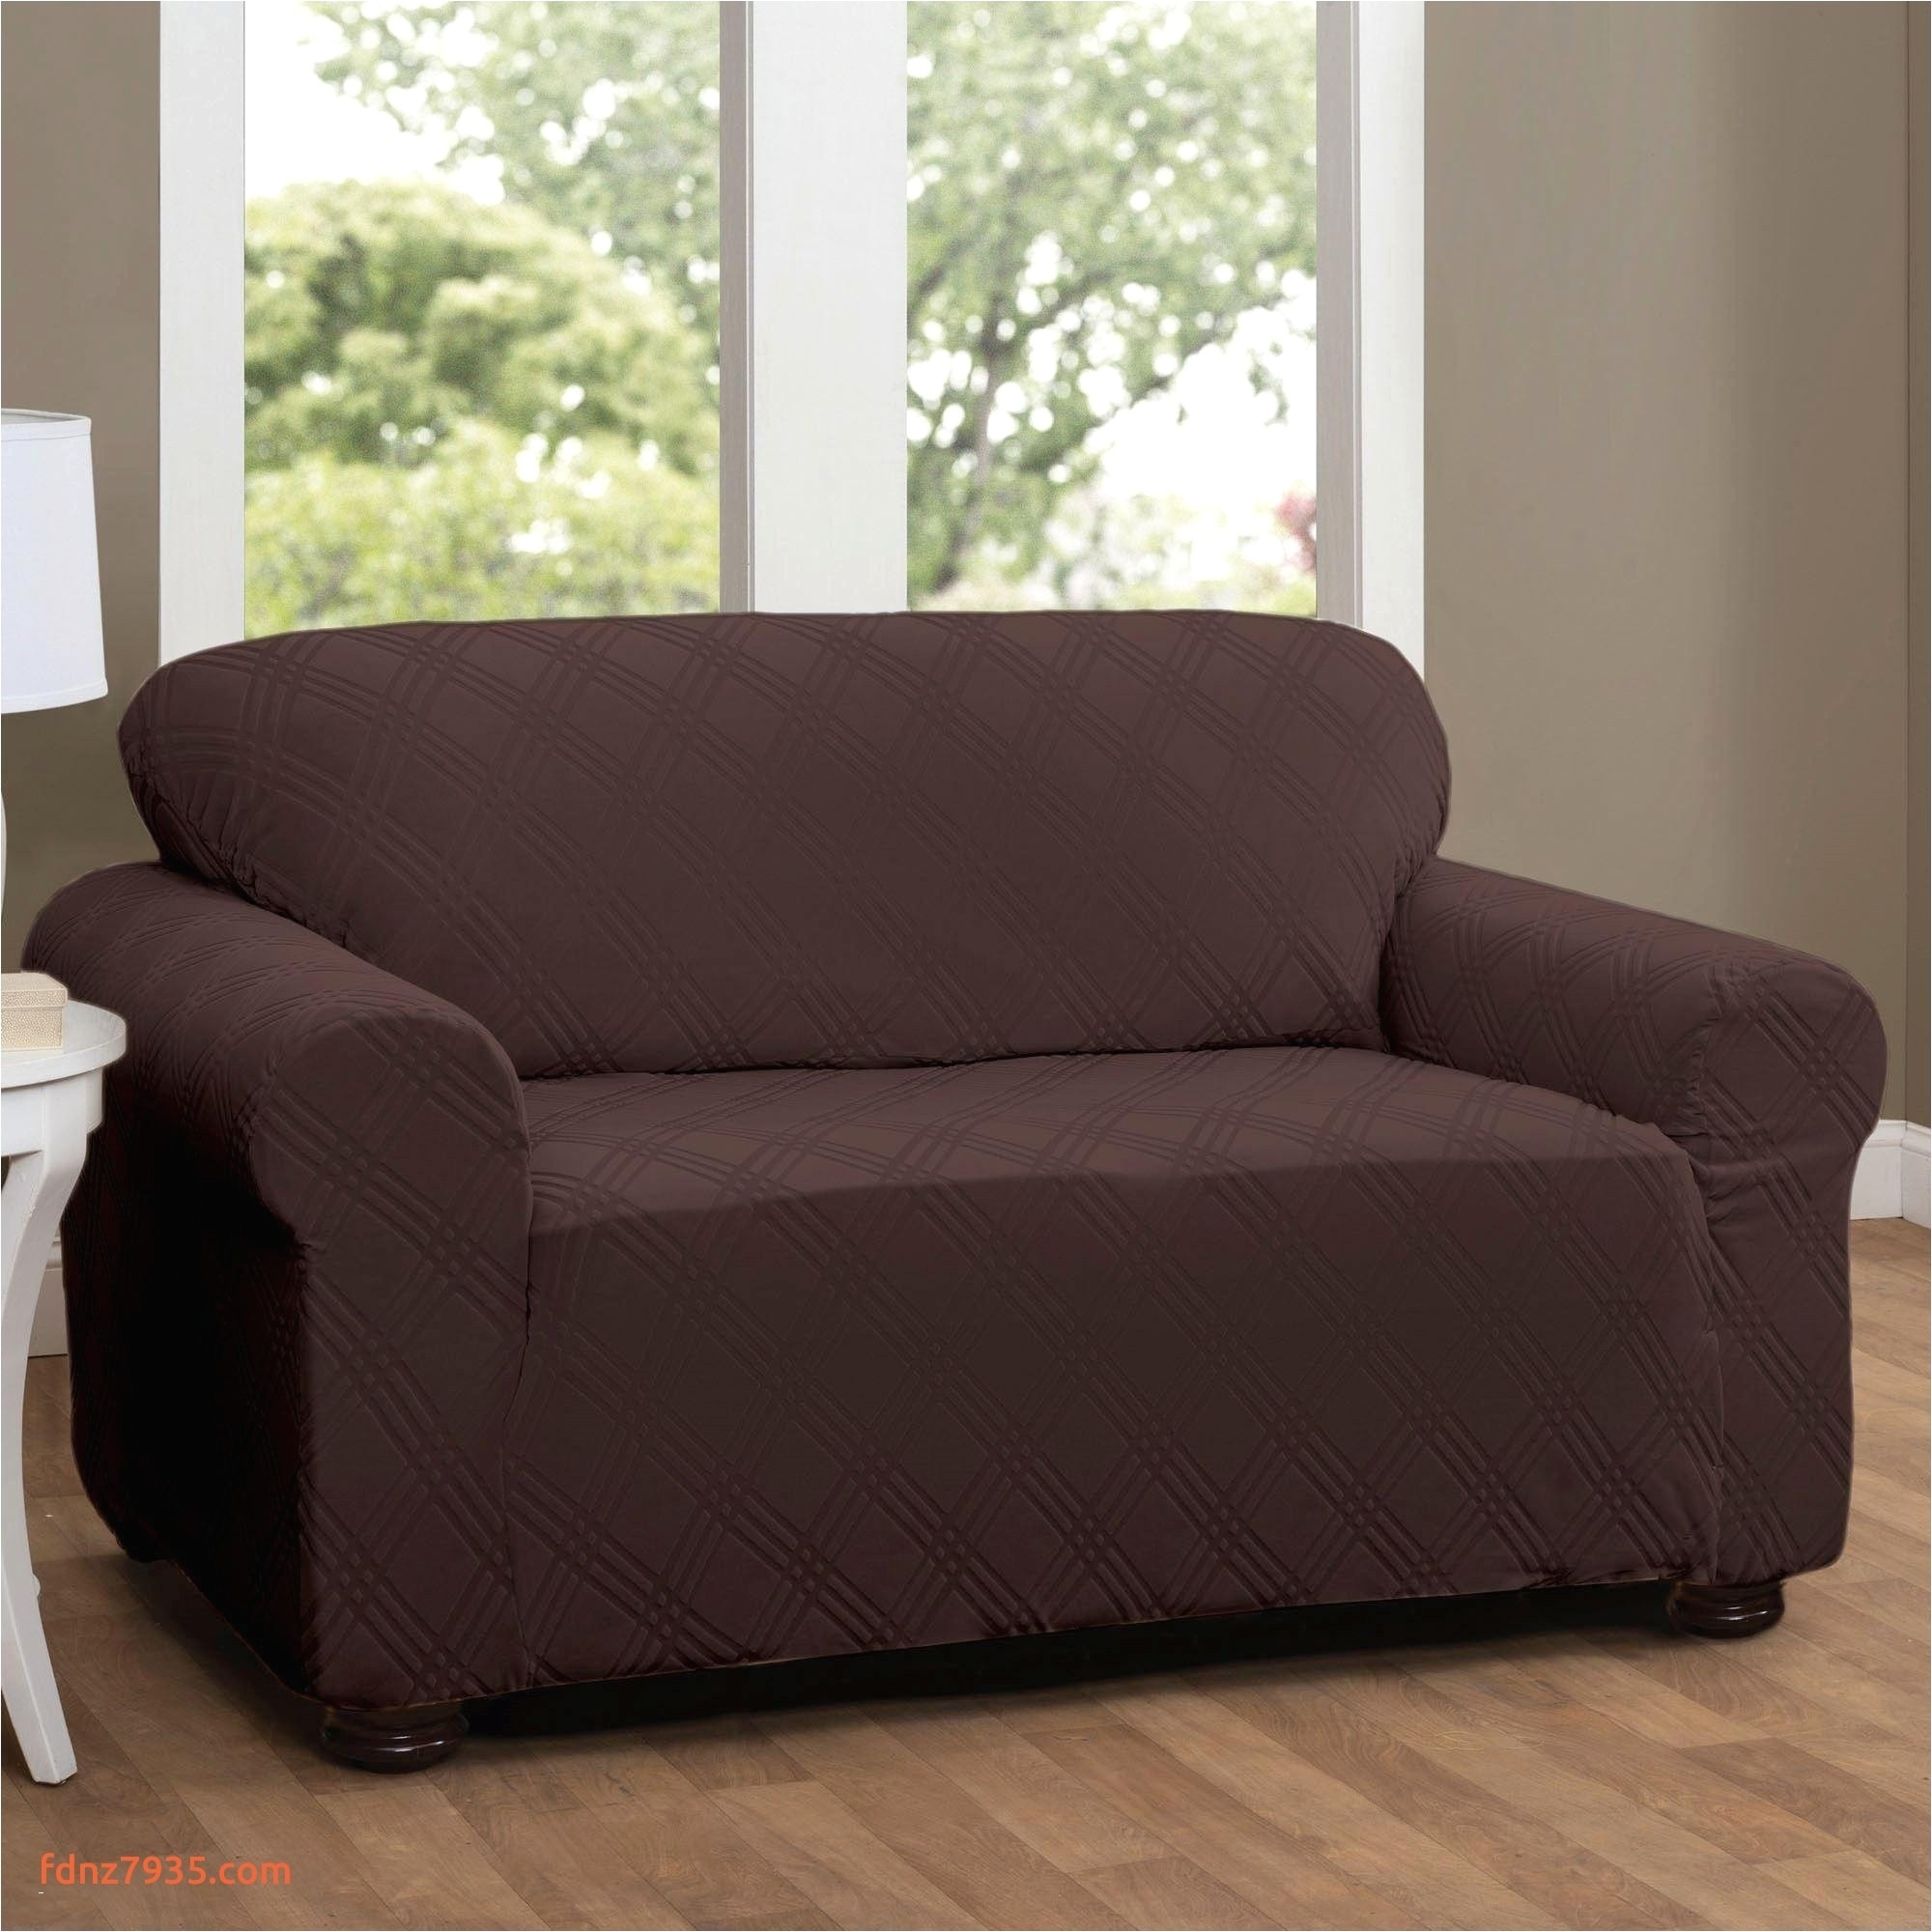 Corner Sleeper Sofa Bed – Home Decor 88 In Arrowmask 2 Piece Sectionals With Sleeper & Left Facing Chaise (Image 6 of 25)